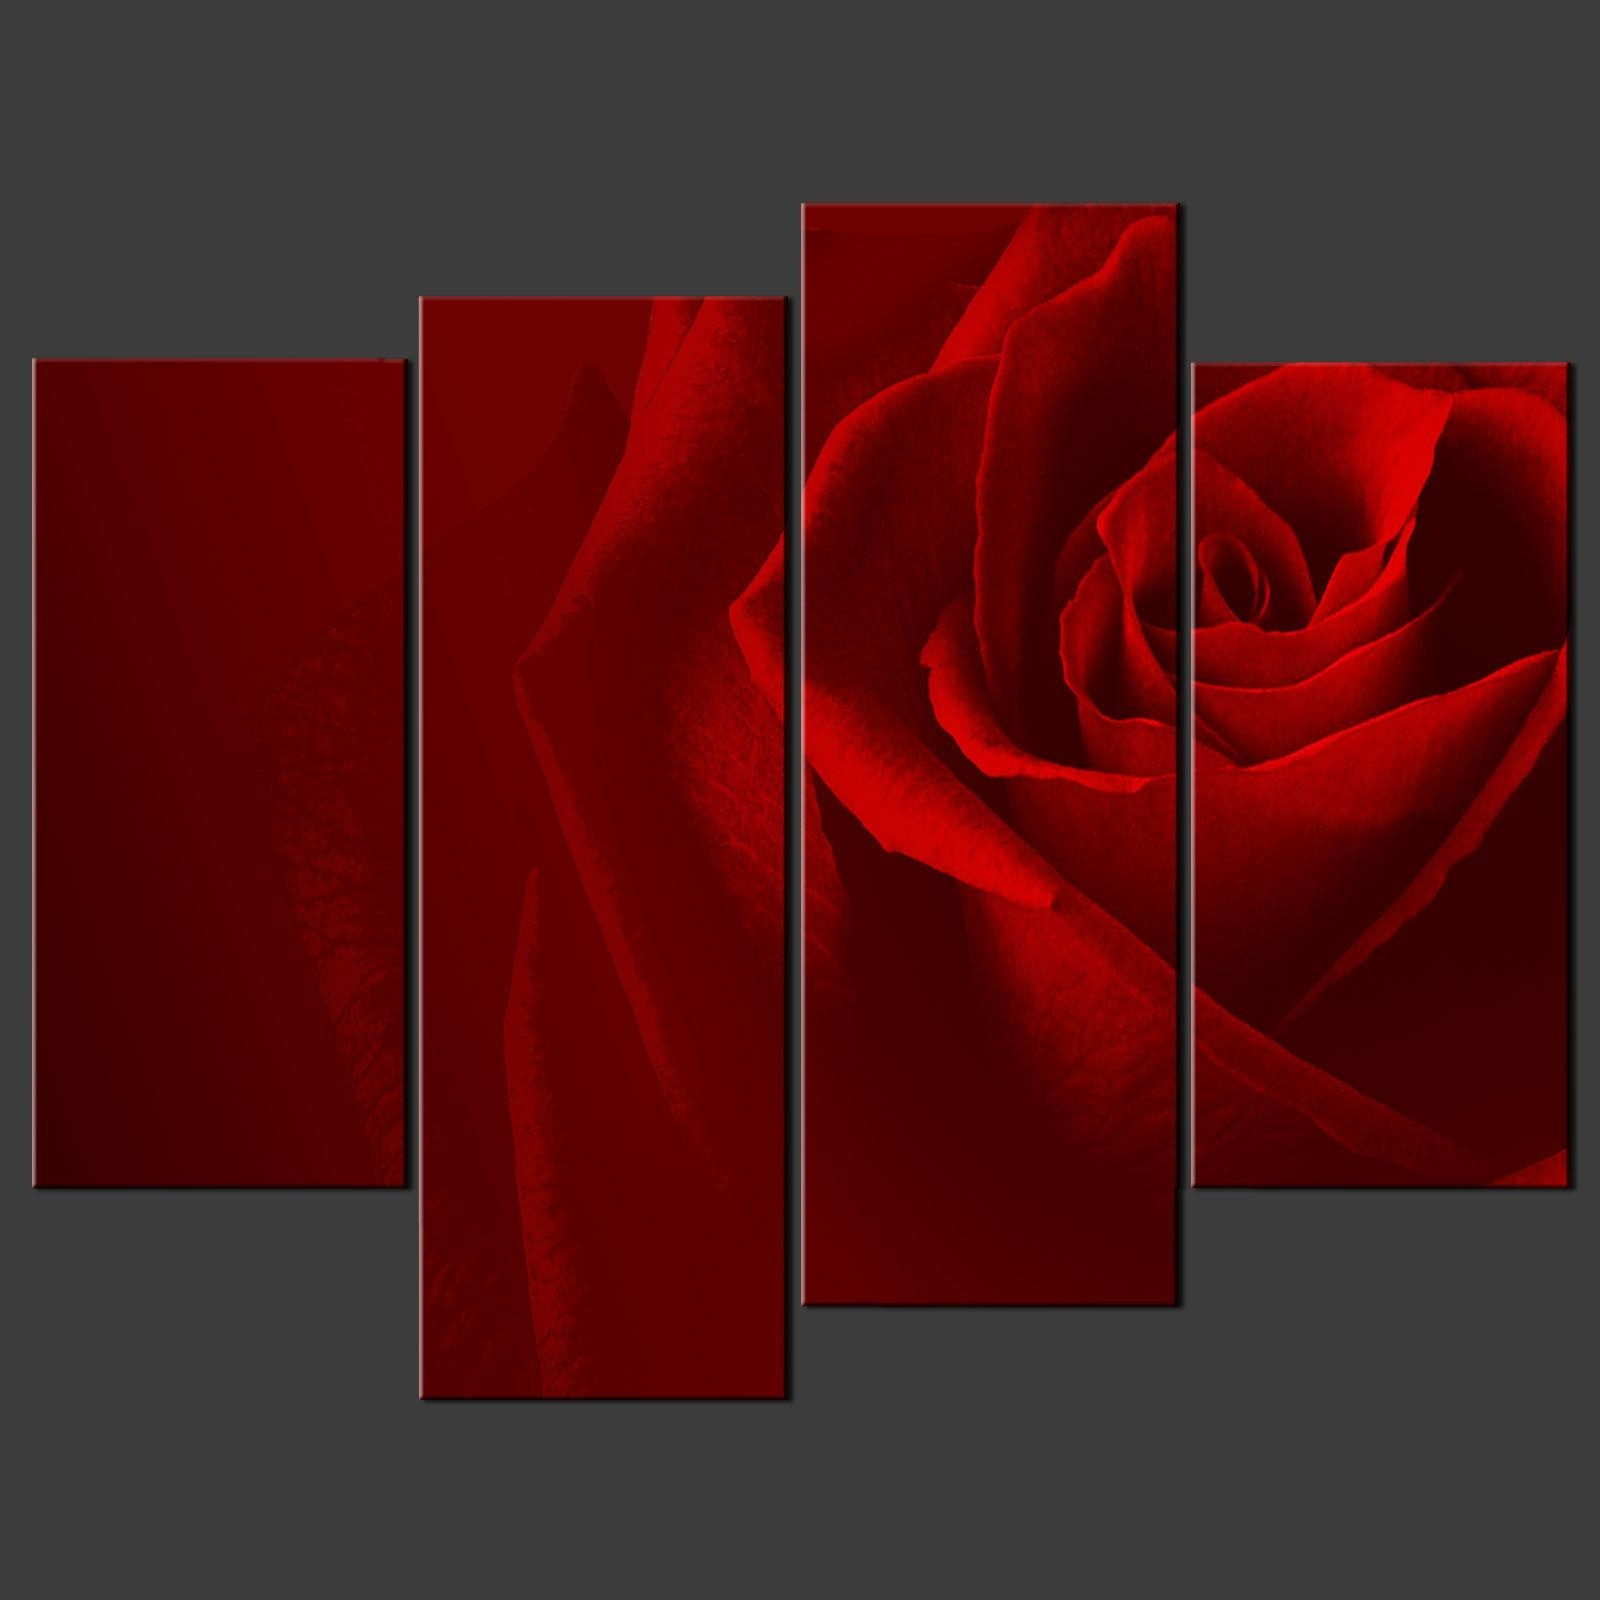 Red Rose Canvas Wall Art Pictures Prints Decor Larger Sizes Regarding Rose Canvas Wall Art (View 17 of 20)